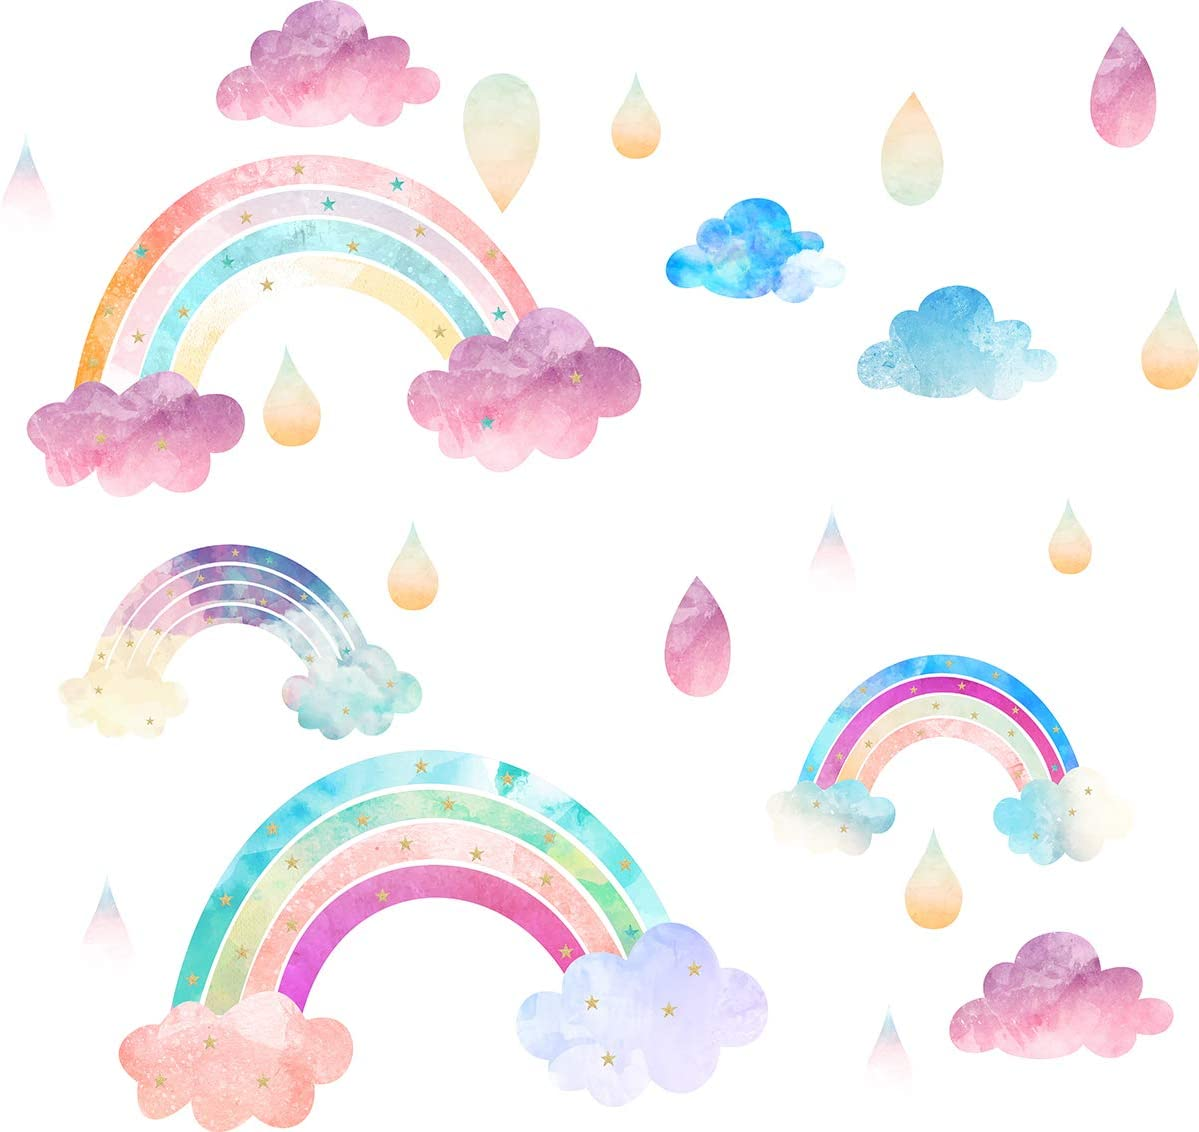 Rainbow Wall Decal Watercolor Rainbow Wall Sticker Removable Fabric Kids Decor